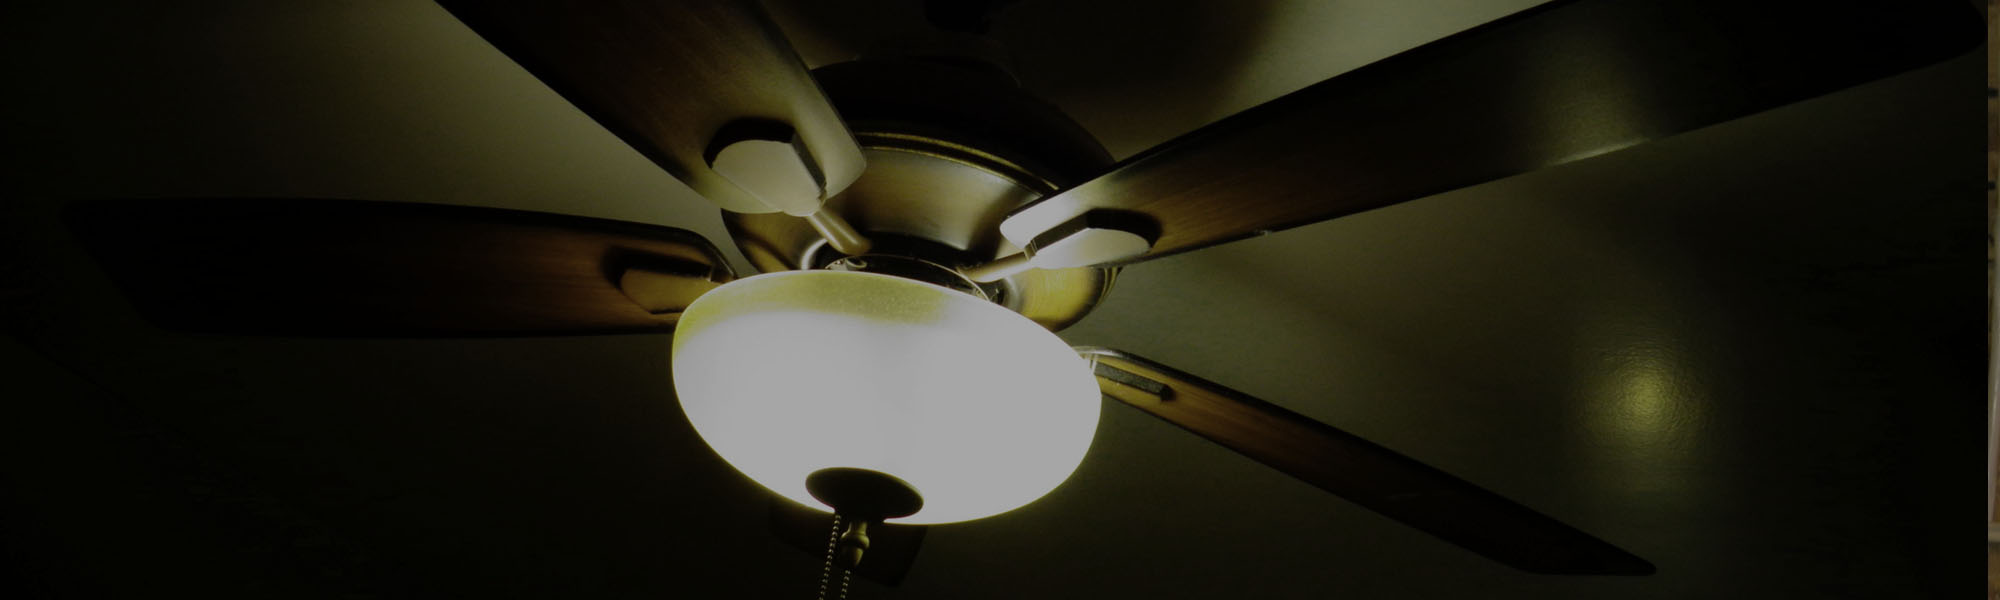 Ceiling Fan Installation Houston Texas Electrical Residential Commercial Fans Wiring Contractors Llc